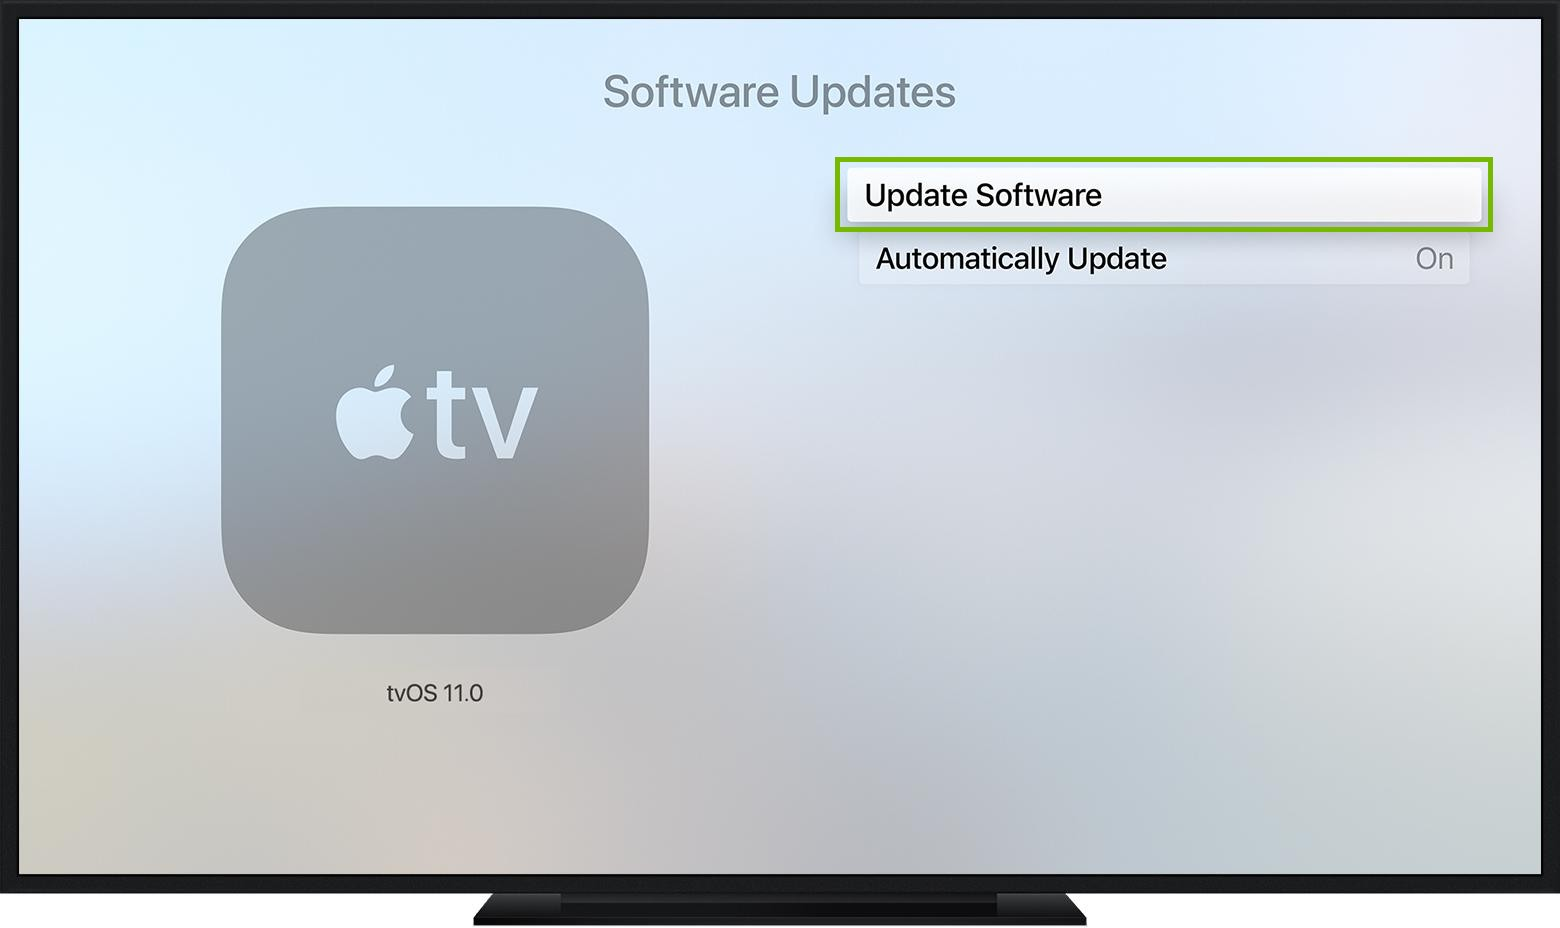 Apple TV software updates screen highlighting the Update Software button.